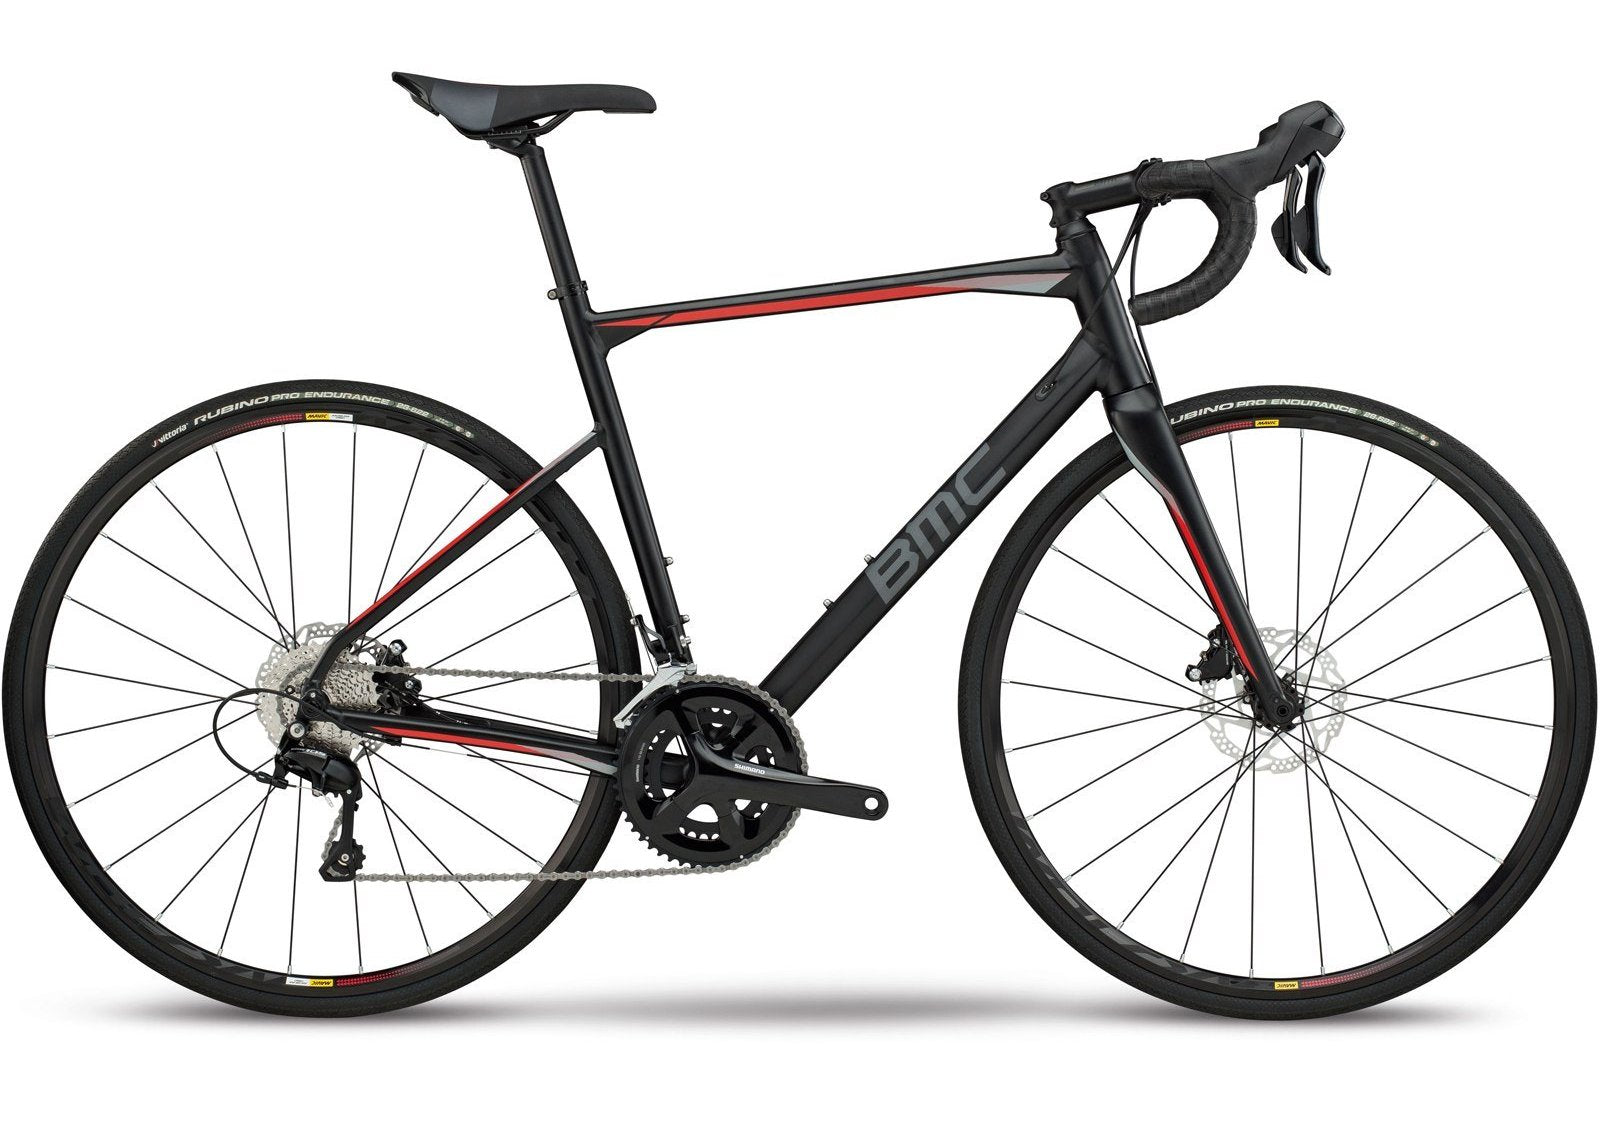 2018 BMC Roadmachine 03 Disc ONE - 105 Aluminium Road Bike - Black Grey